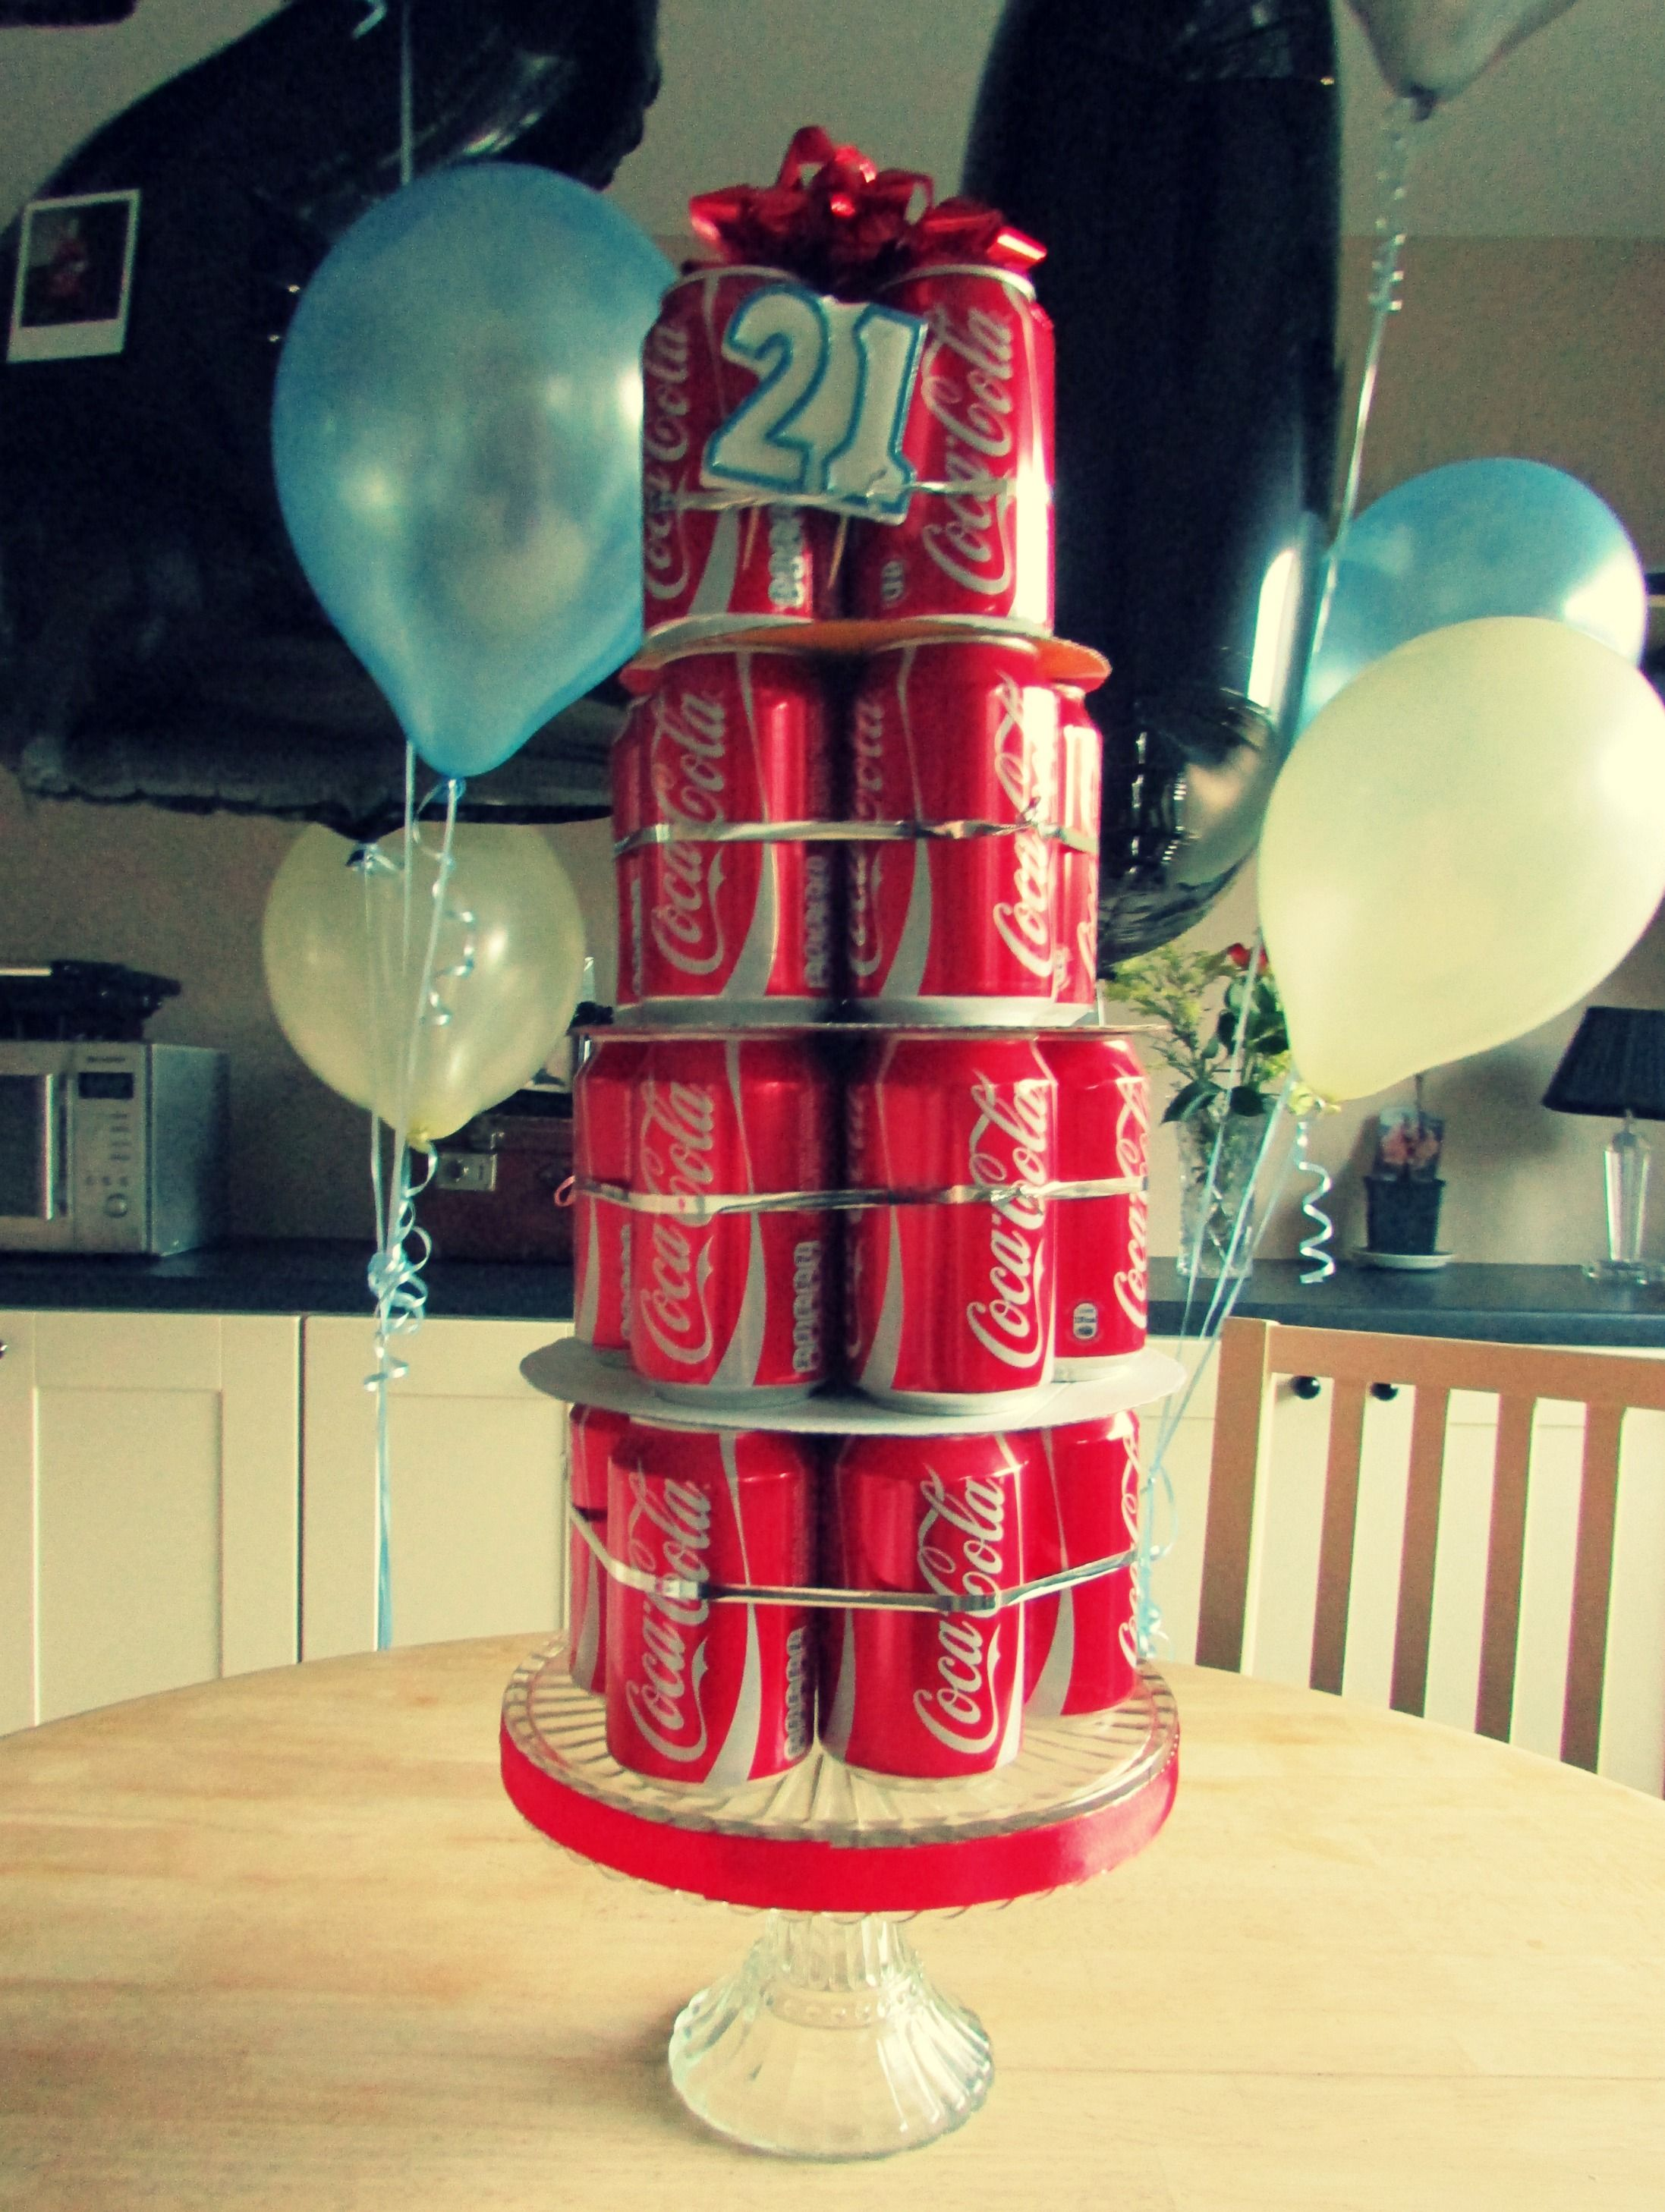 Real cans of coke made to look like a cake